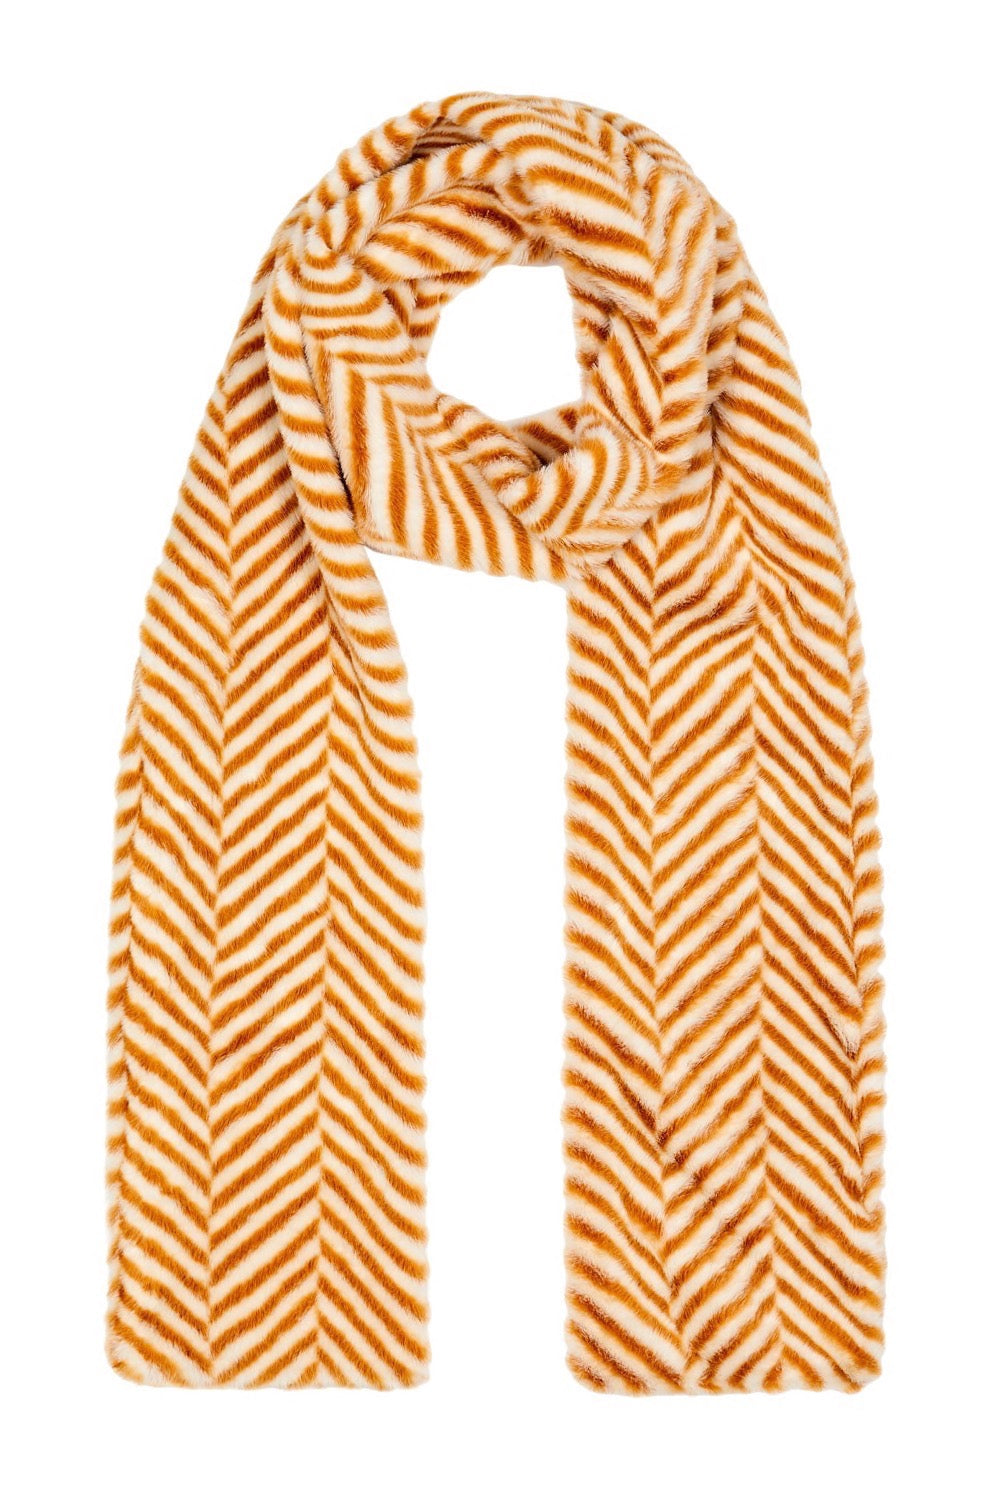 Ari Double Layer Faux Fur Scarf - Ochre